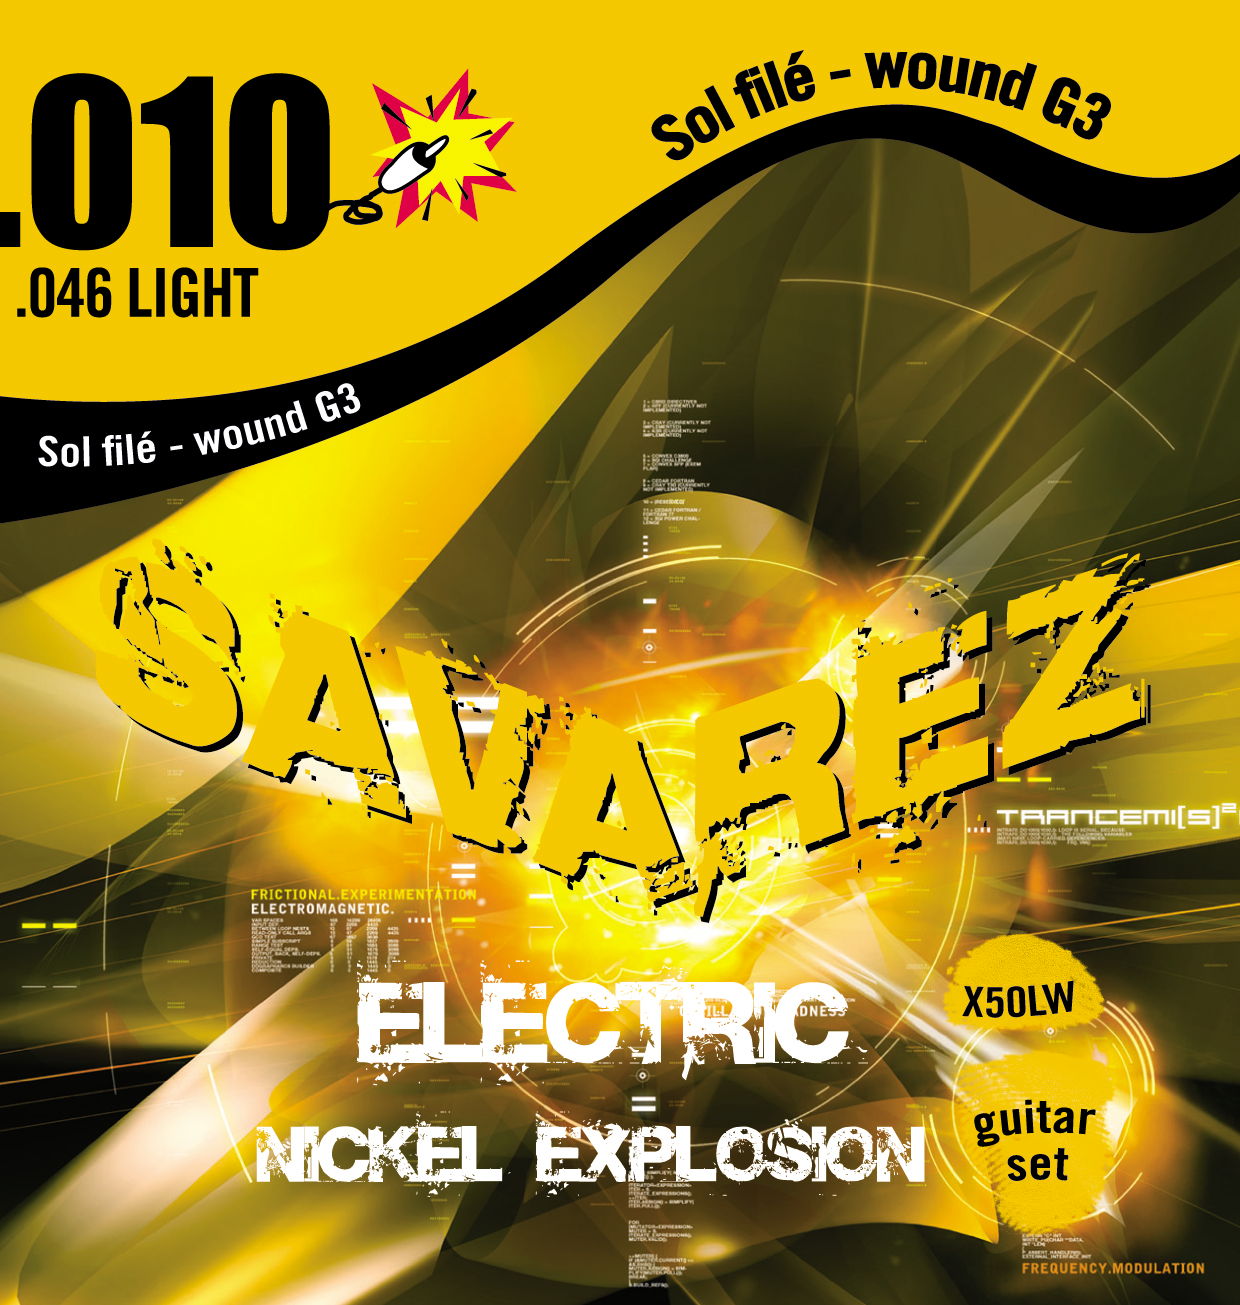 SAVAREZ ELECTRIC EXPLOSION X50LW